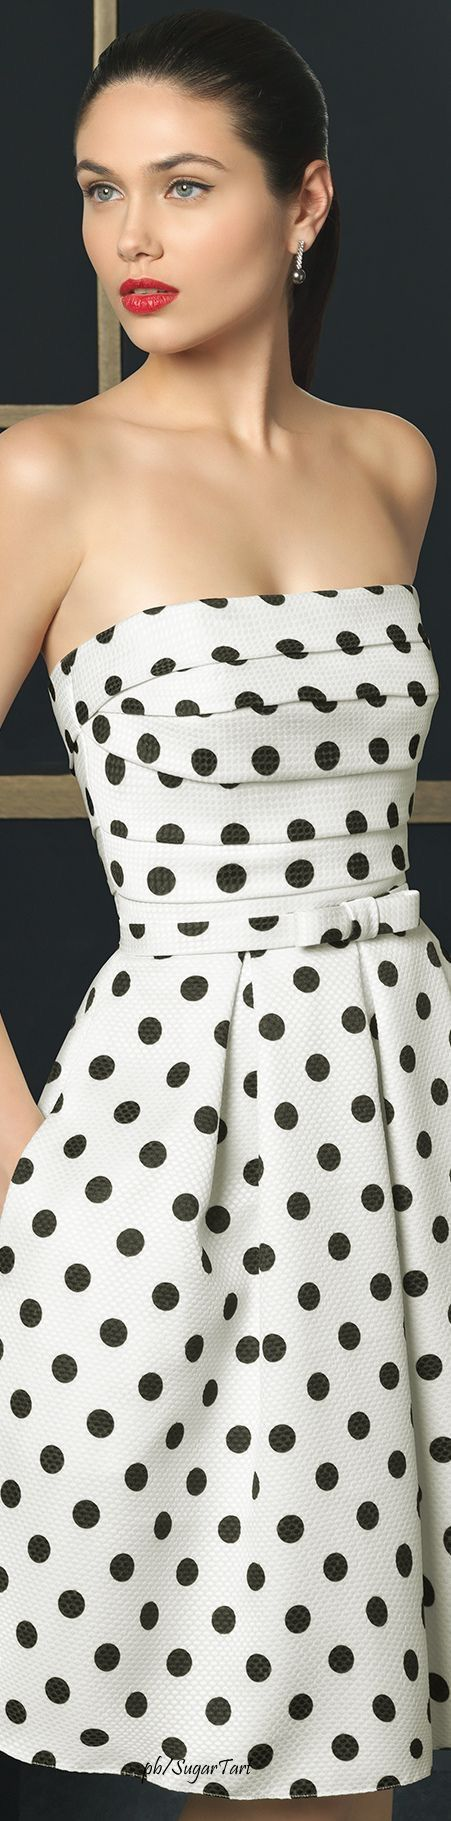 Polka dots dress - see the tiny bow on the waist?